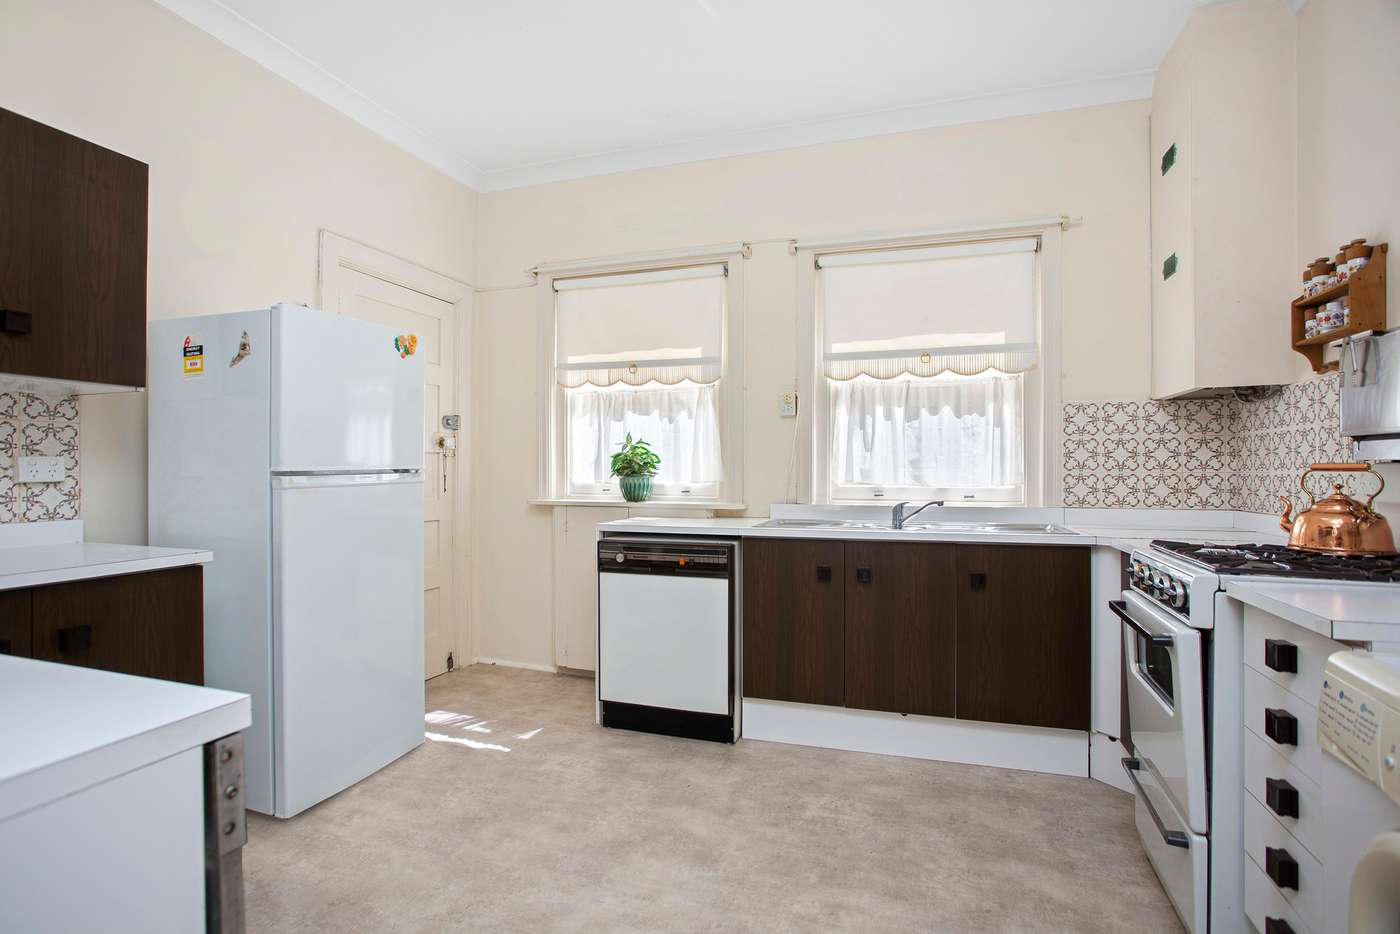 Sixth view of Homely apartment listing, 3/8 Fairlight Crescent, Fairlight NSW 2094